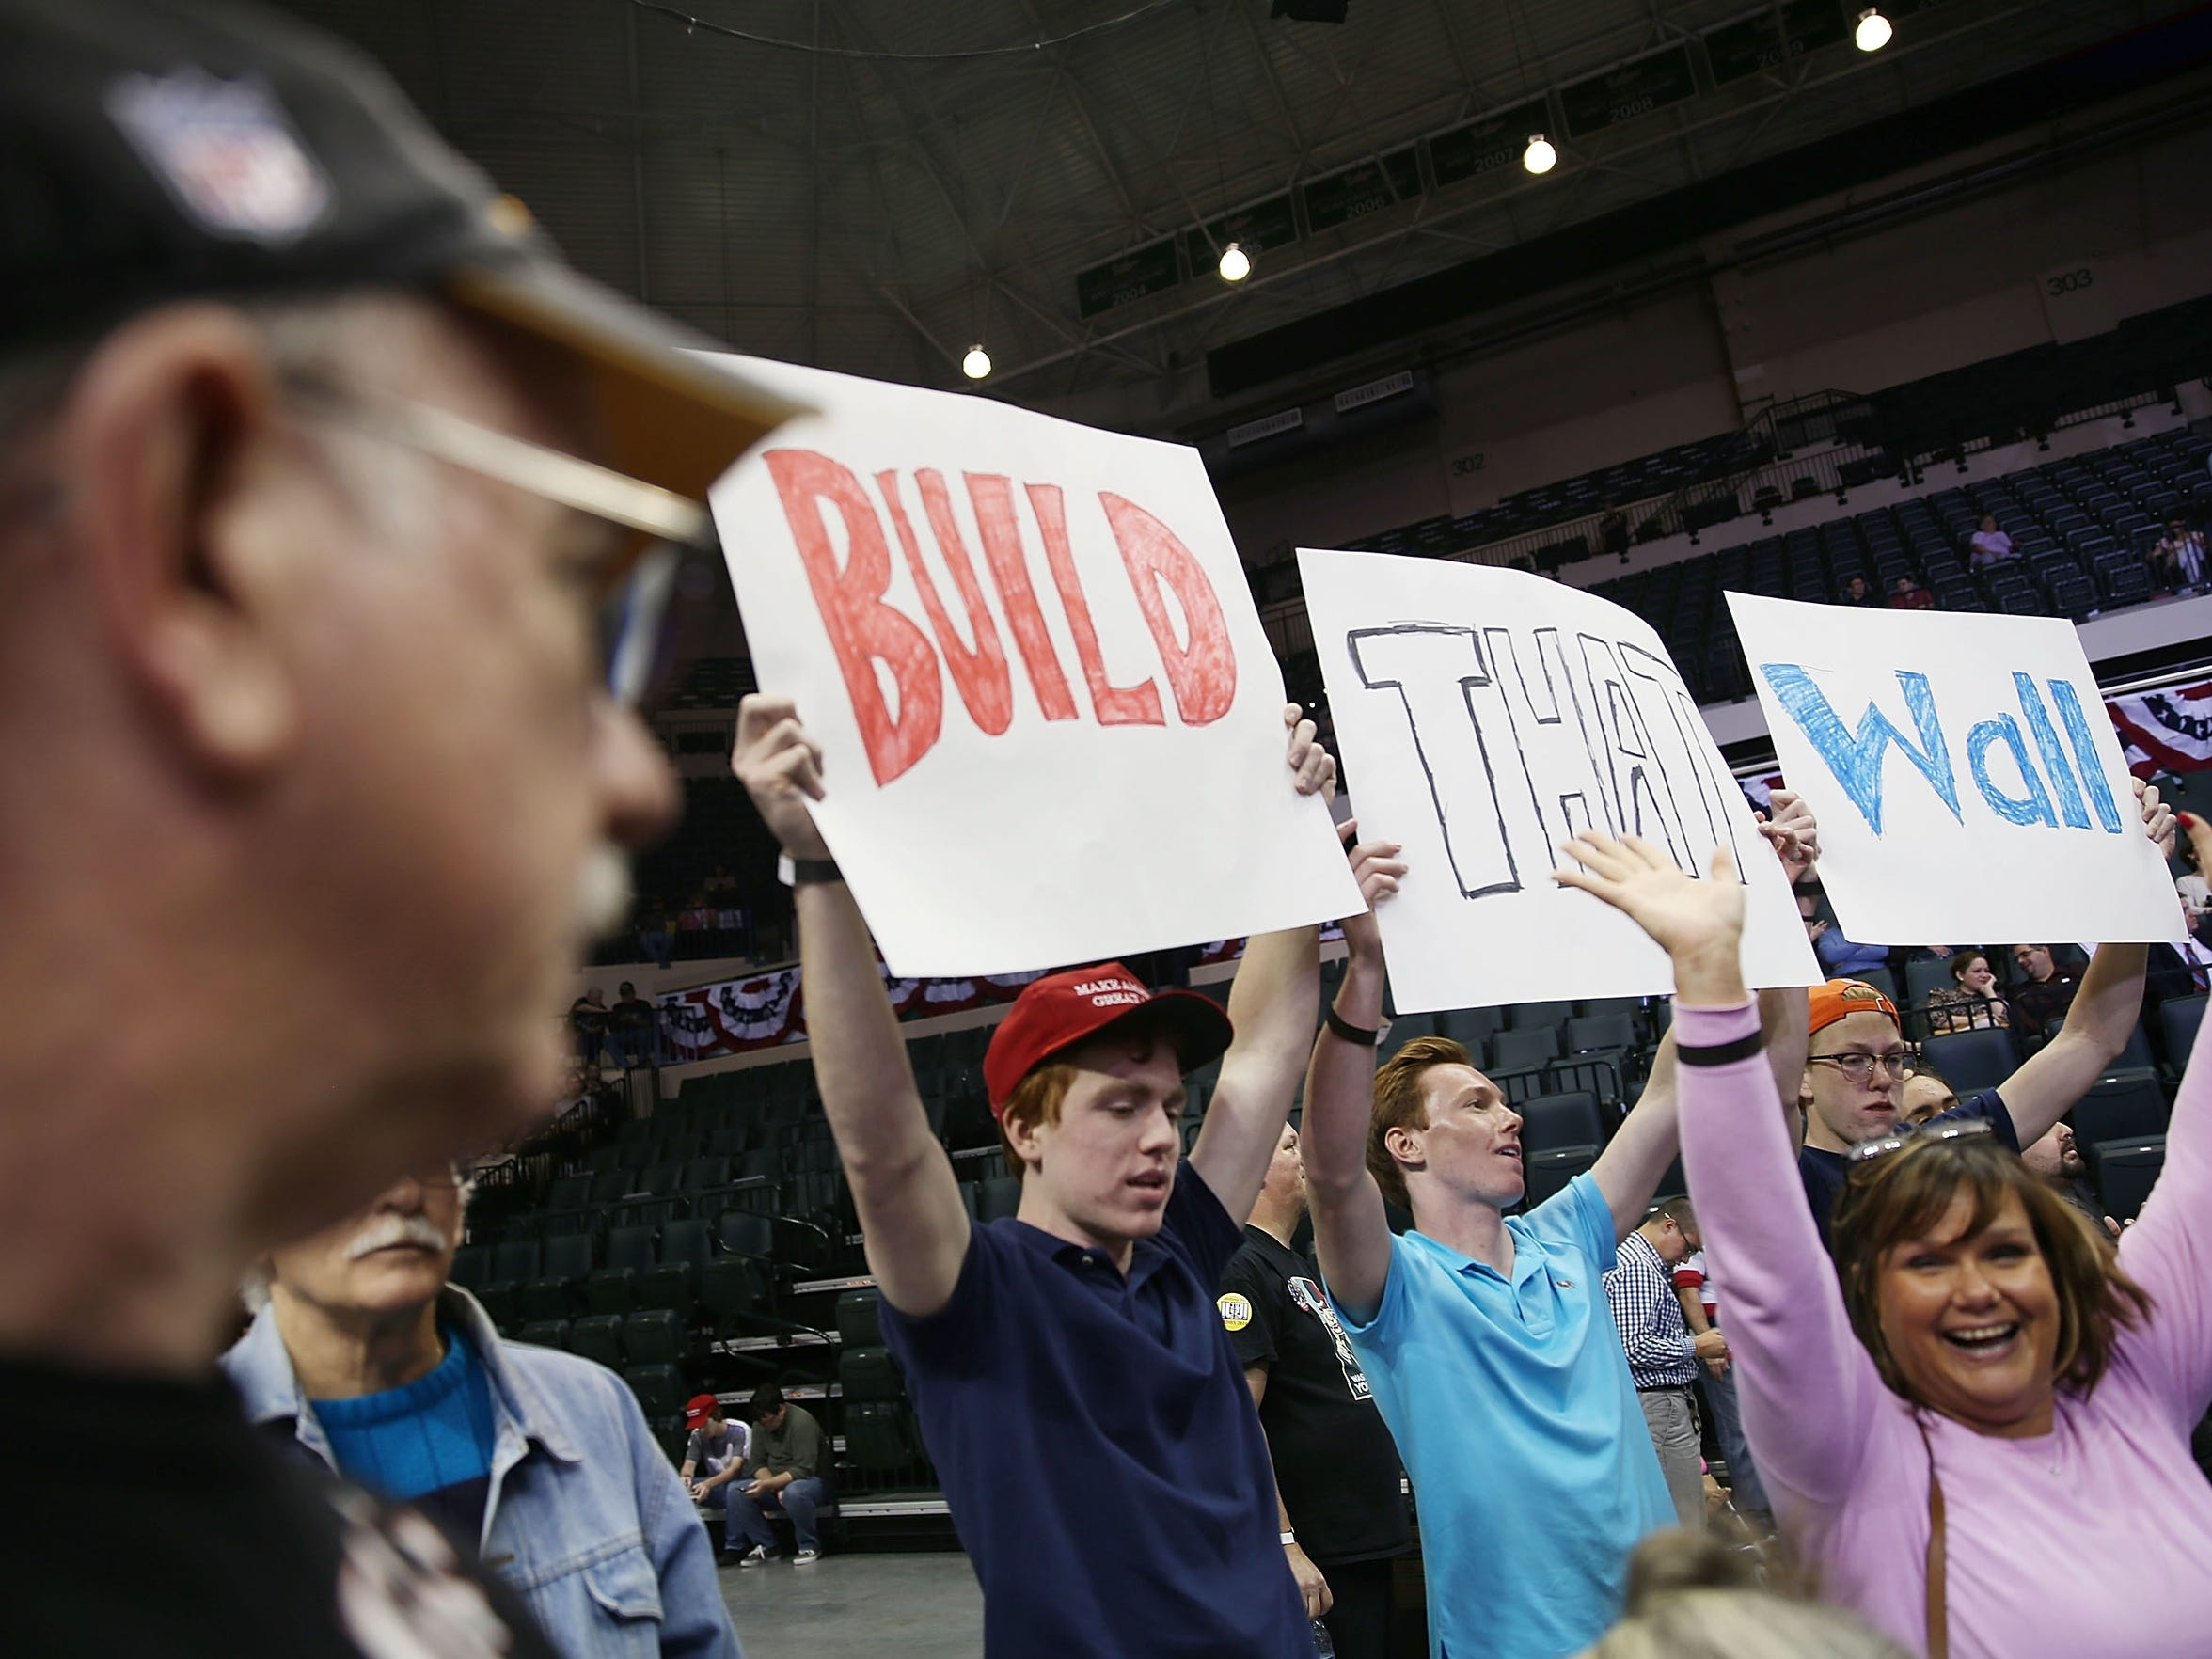 """People hold signs that read """"Build that Wall"""" as they wait the start of a campaign rally for Donald Trump on Feb. 12, 2016, in Tampa, Fla."""